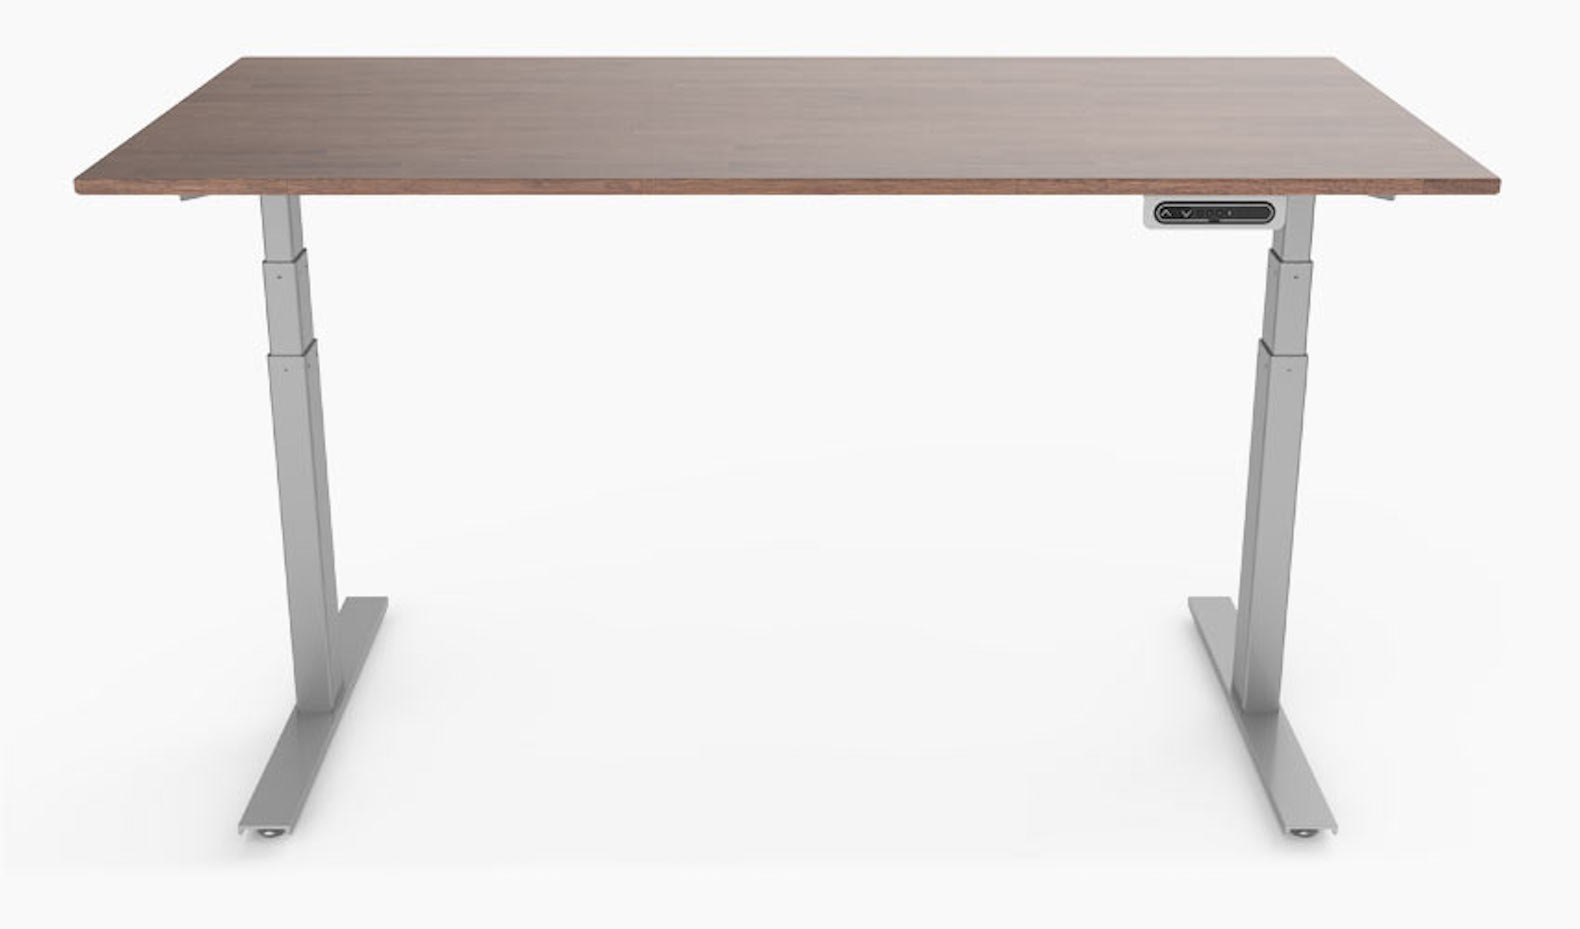 Essential Elements of an Adjustable Reputation Desk